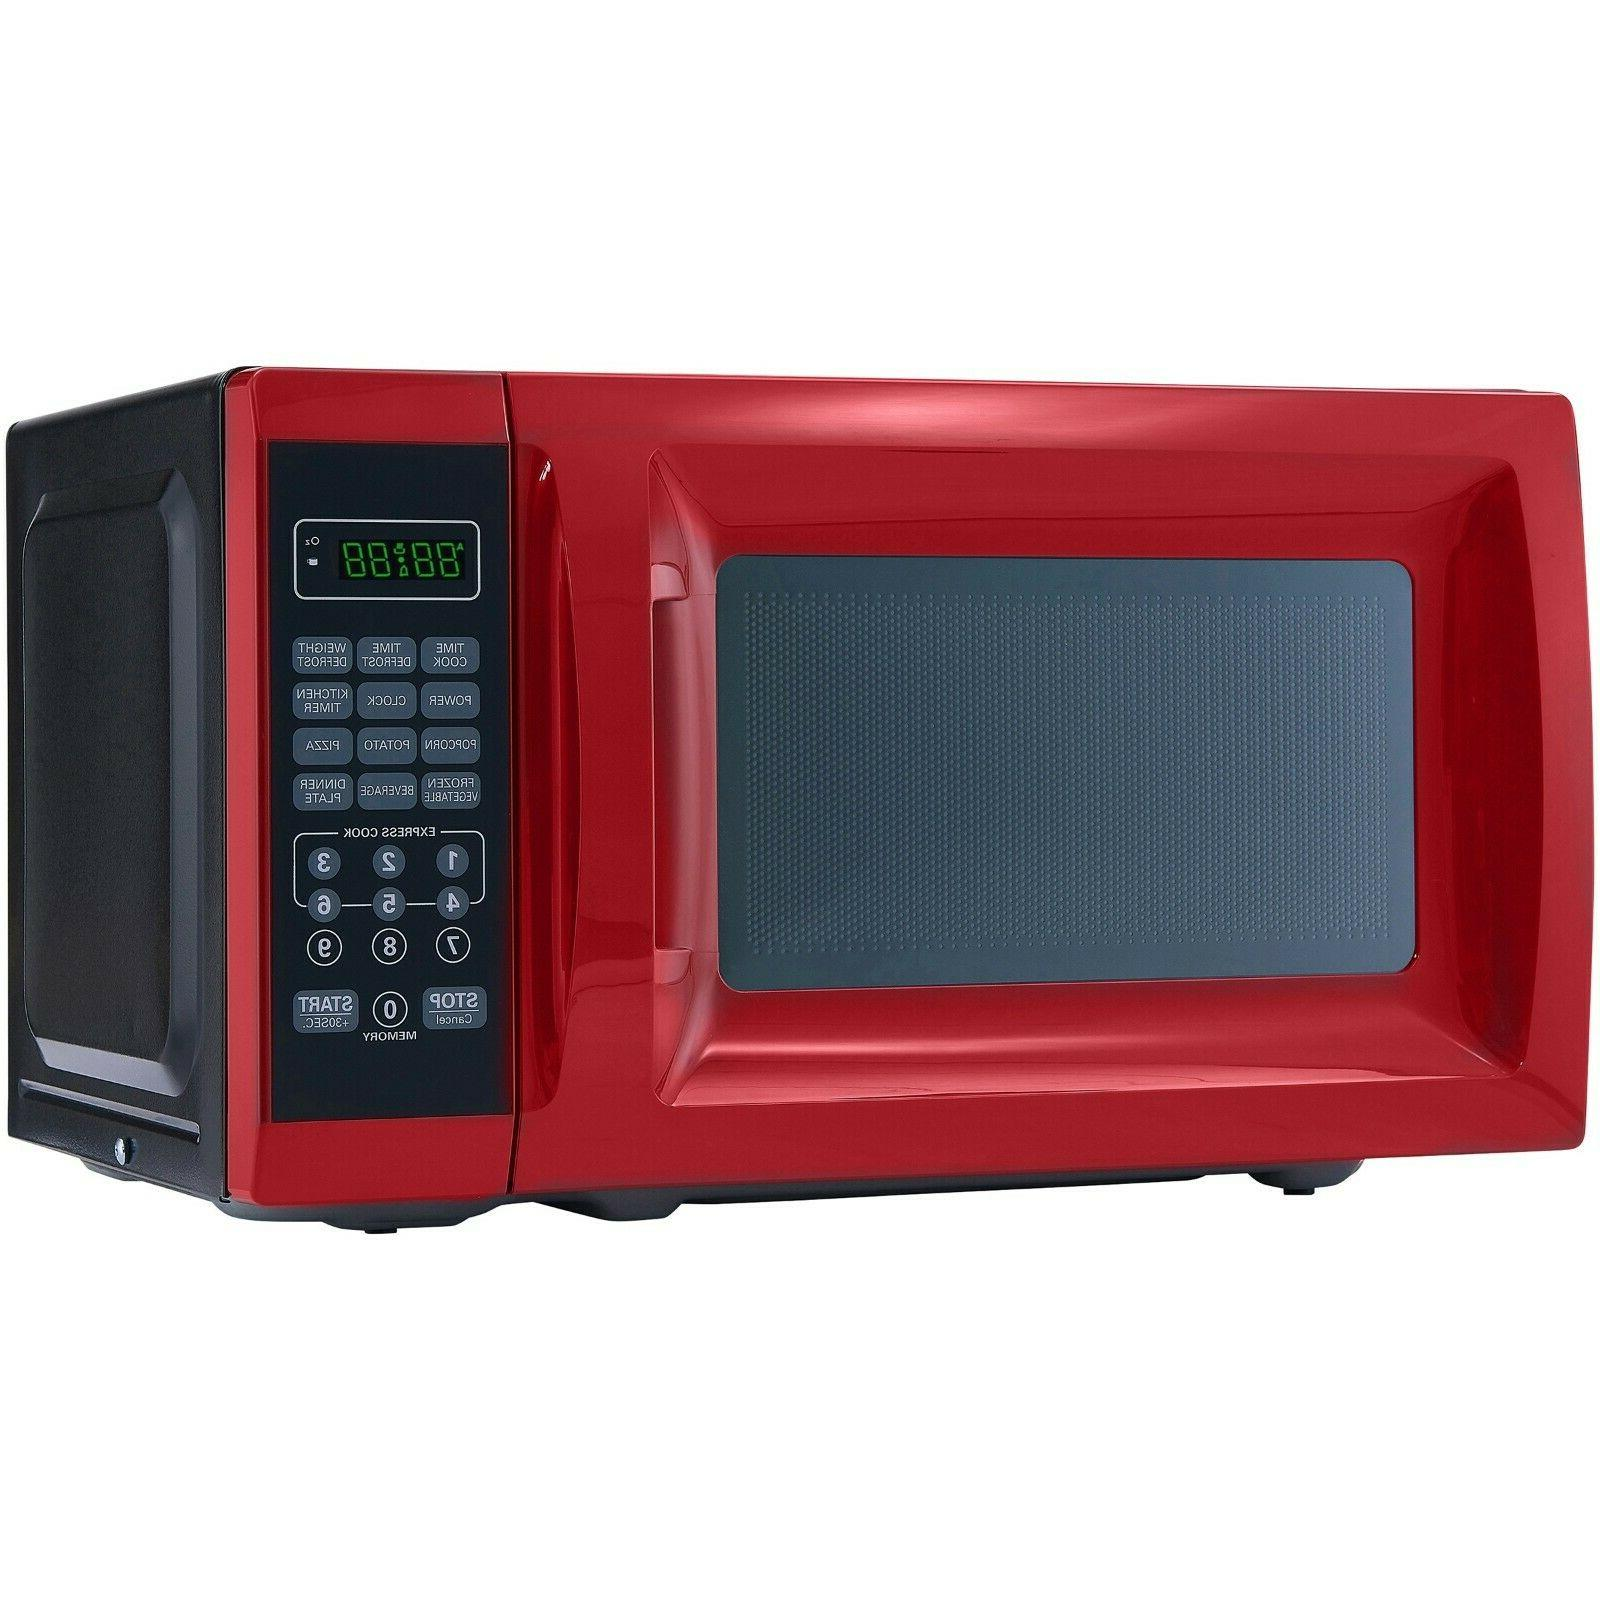 0.7 Red Microwave Power Kitchen